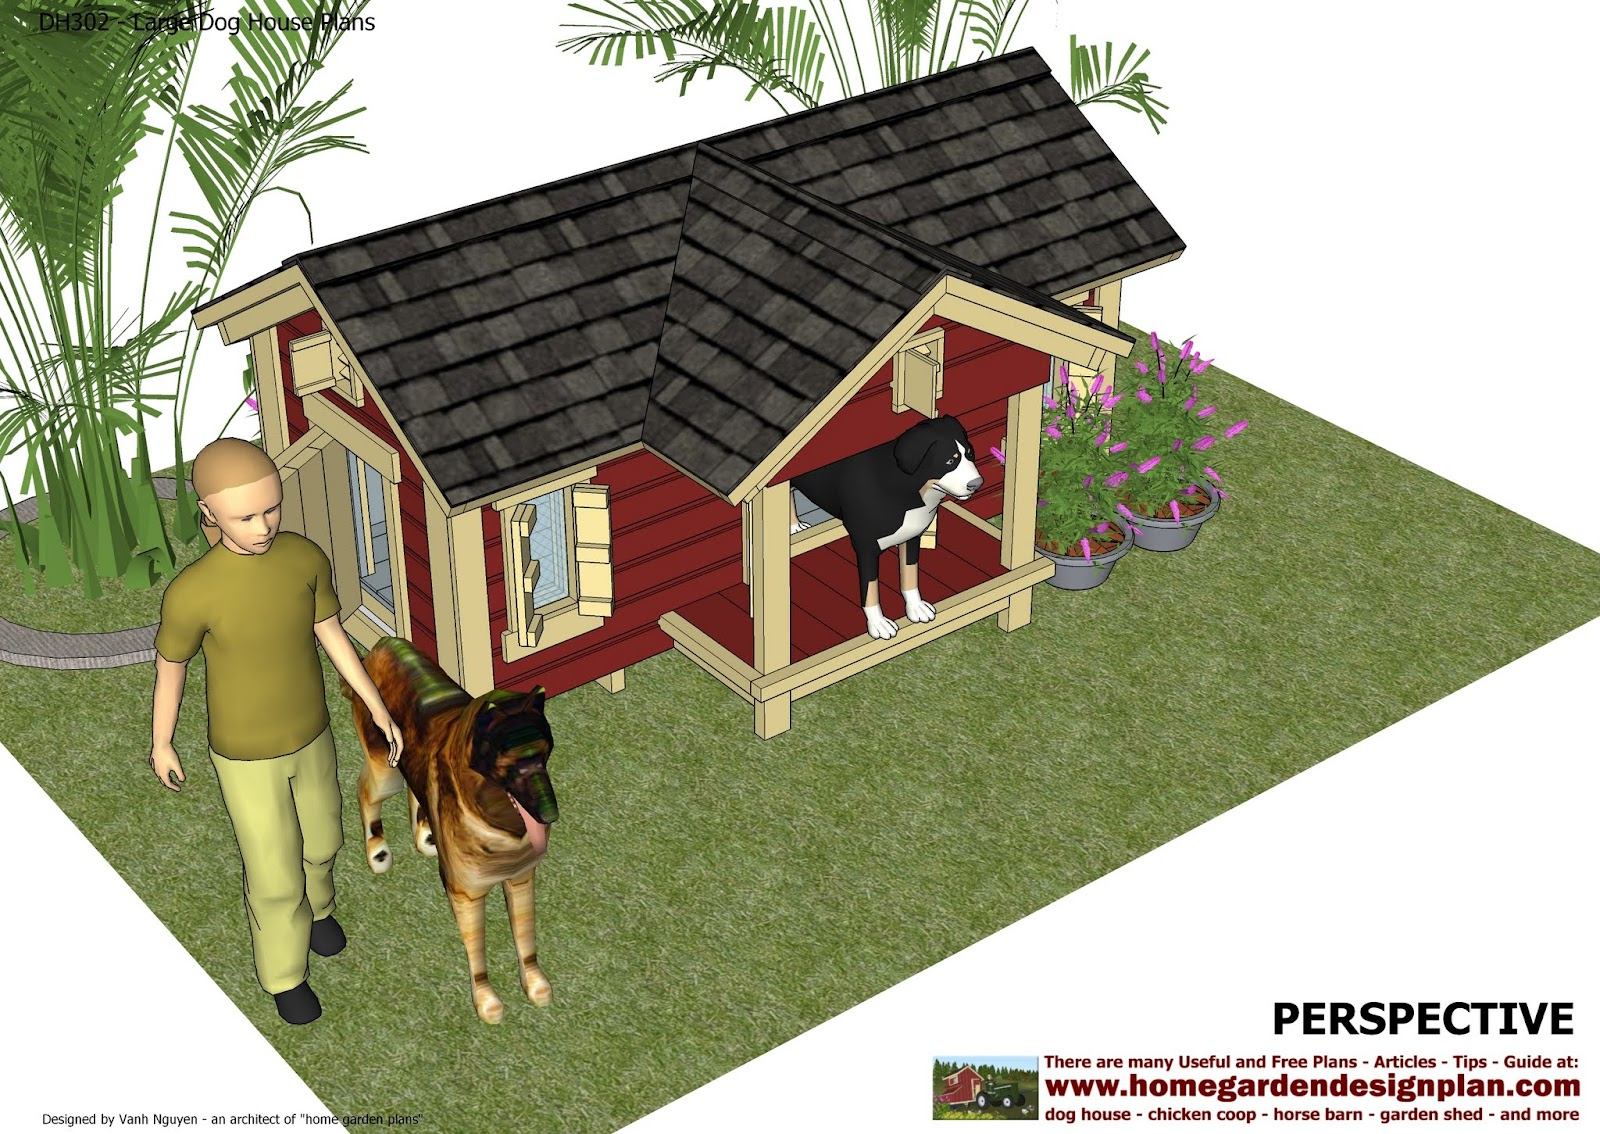 home garden plans: dh302 - insulated dog house plans construction